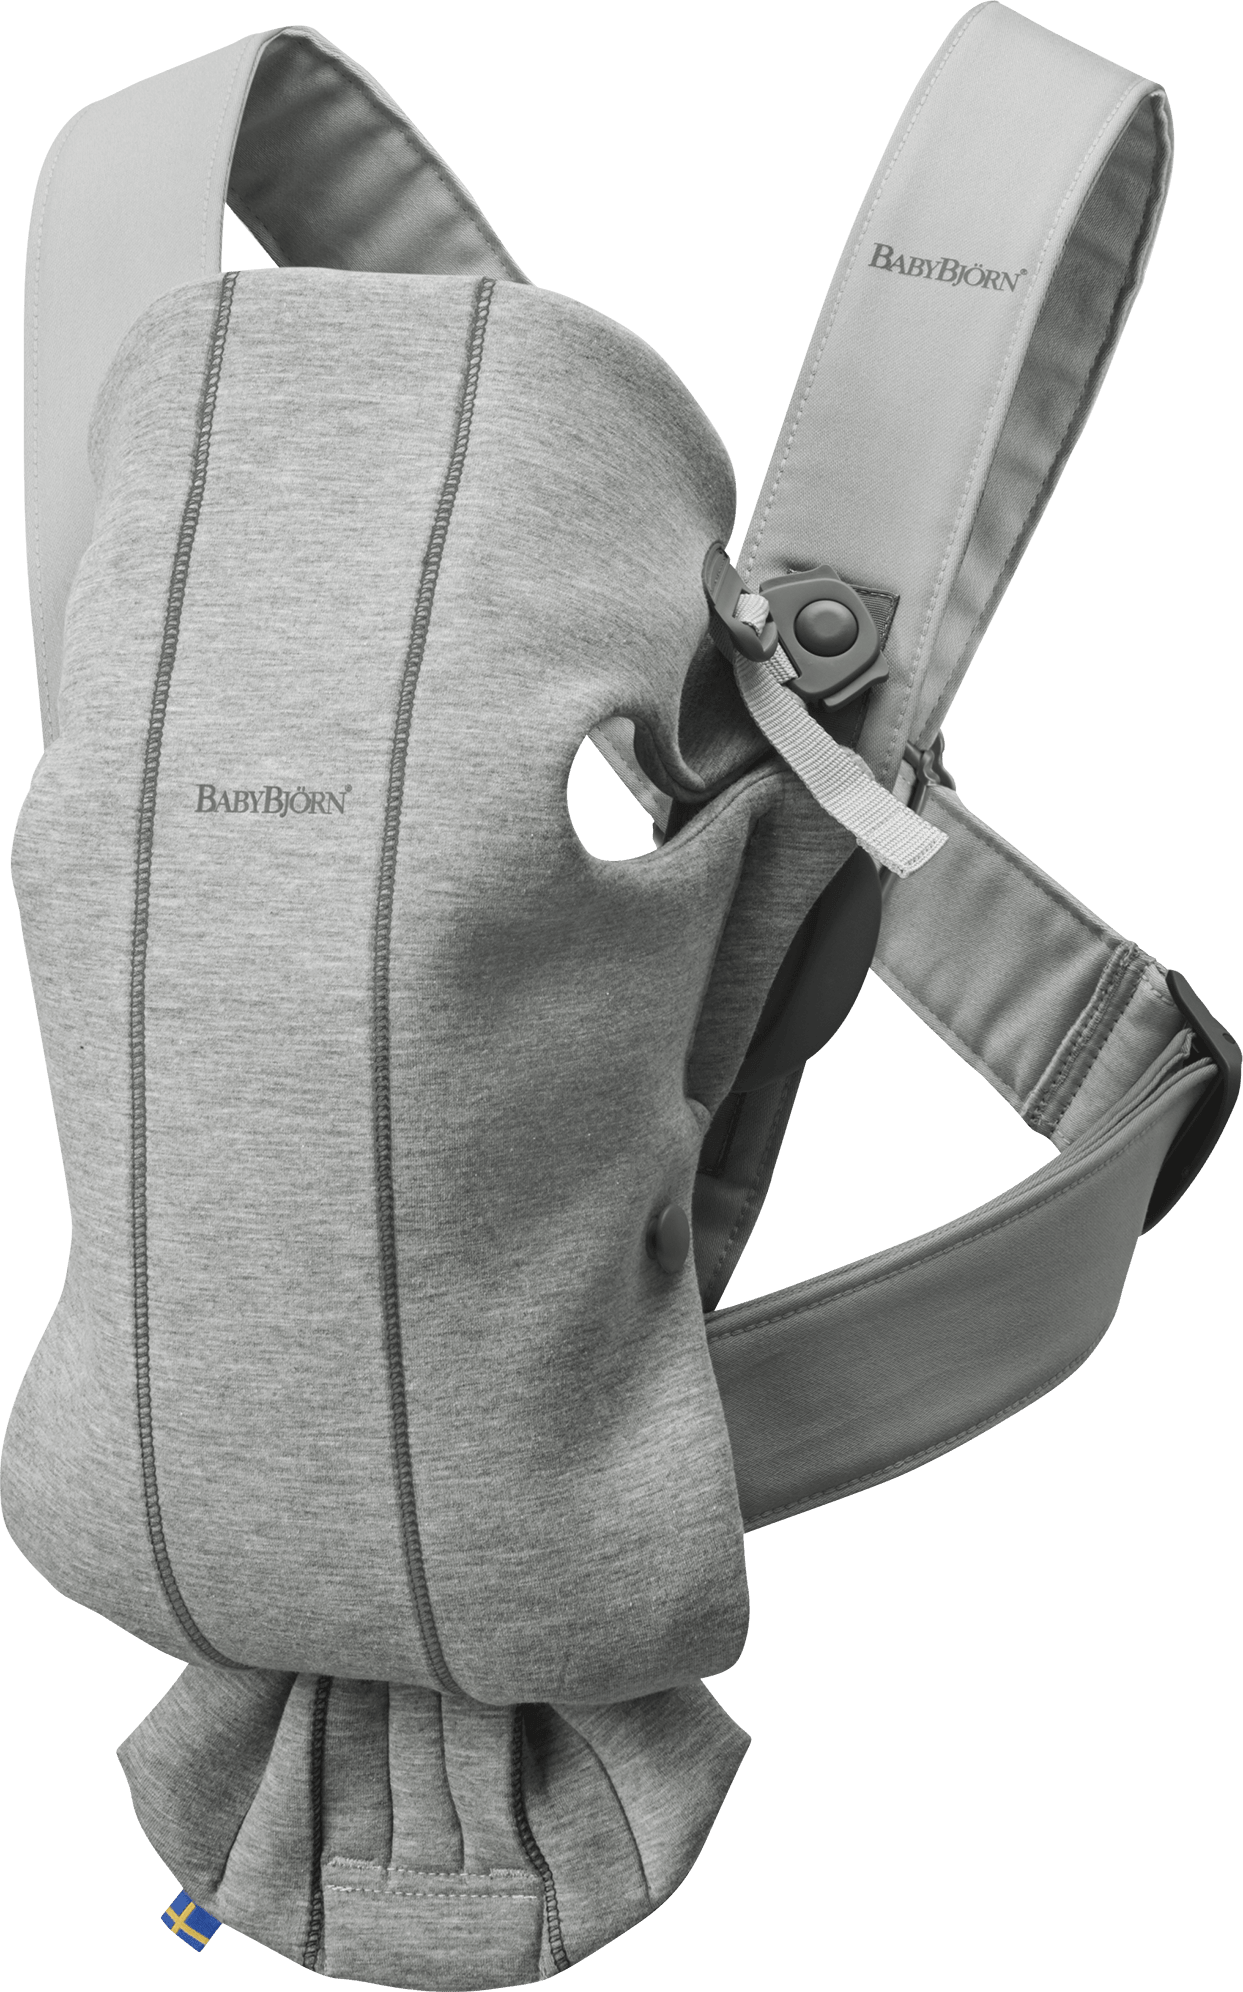 baby-carrier-mini-light-grey-3d-jersey-021072-babybjorn